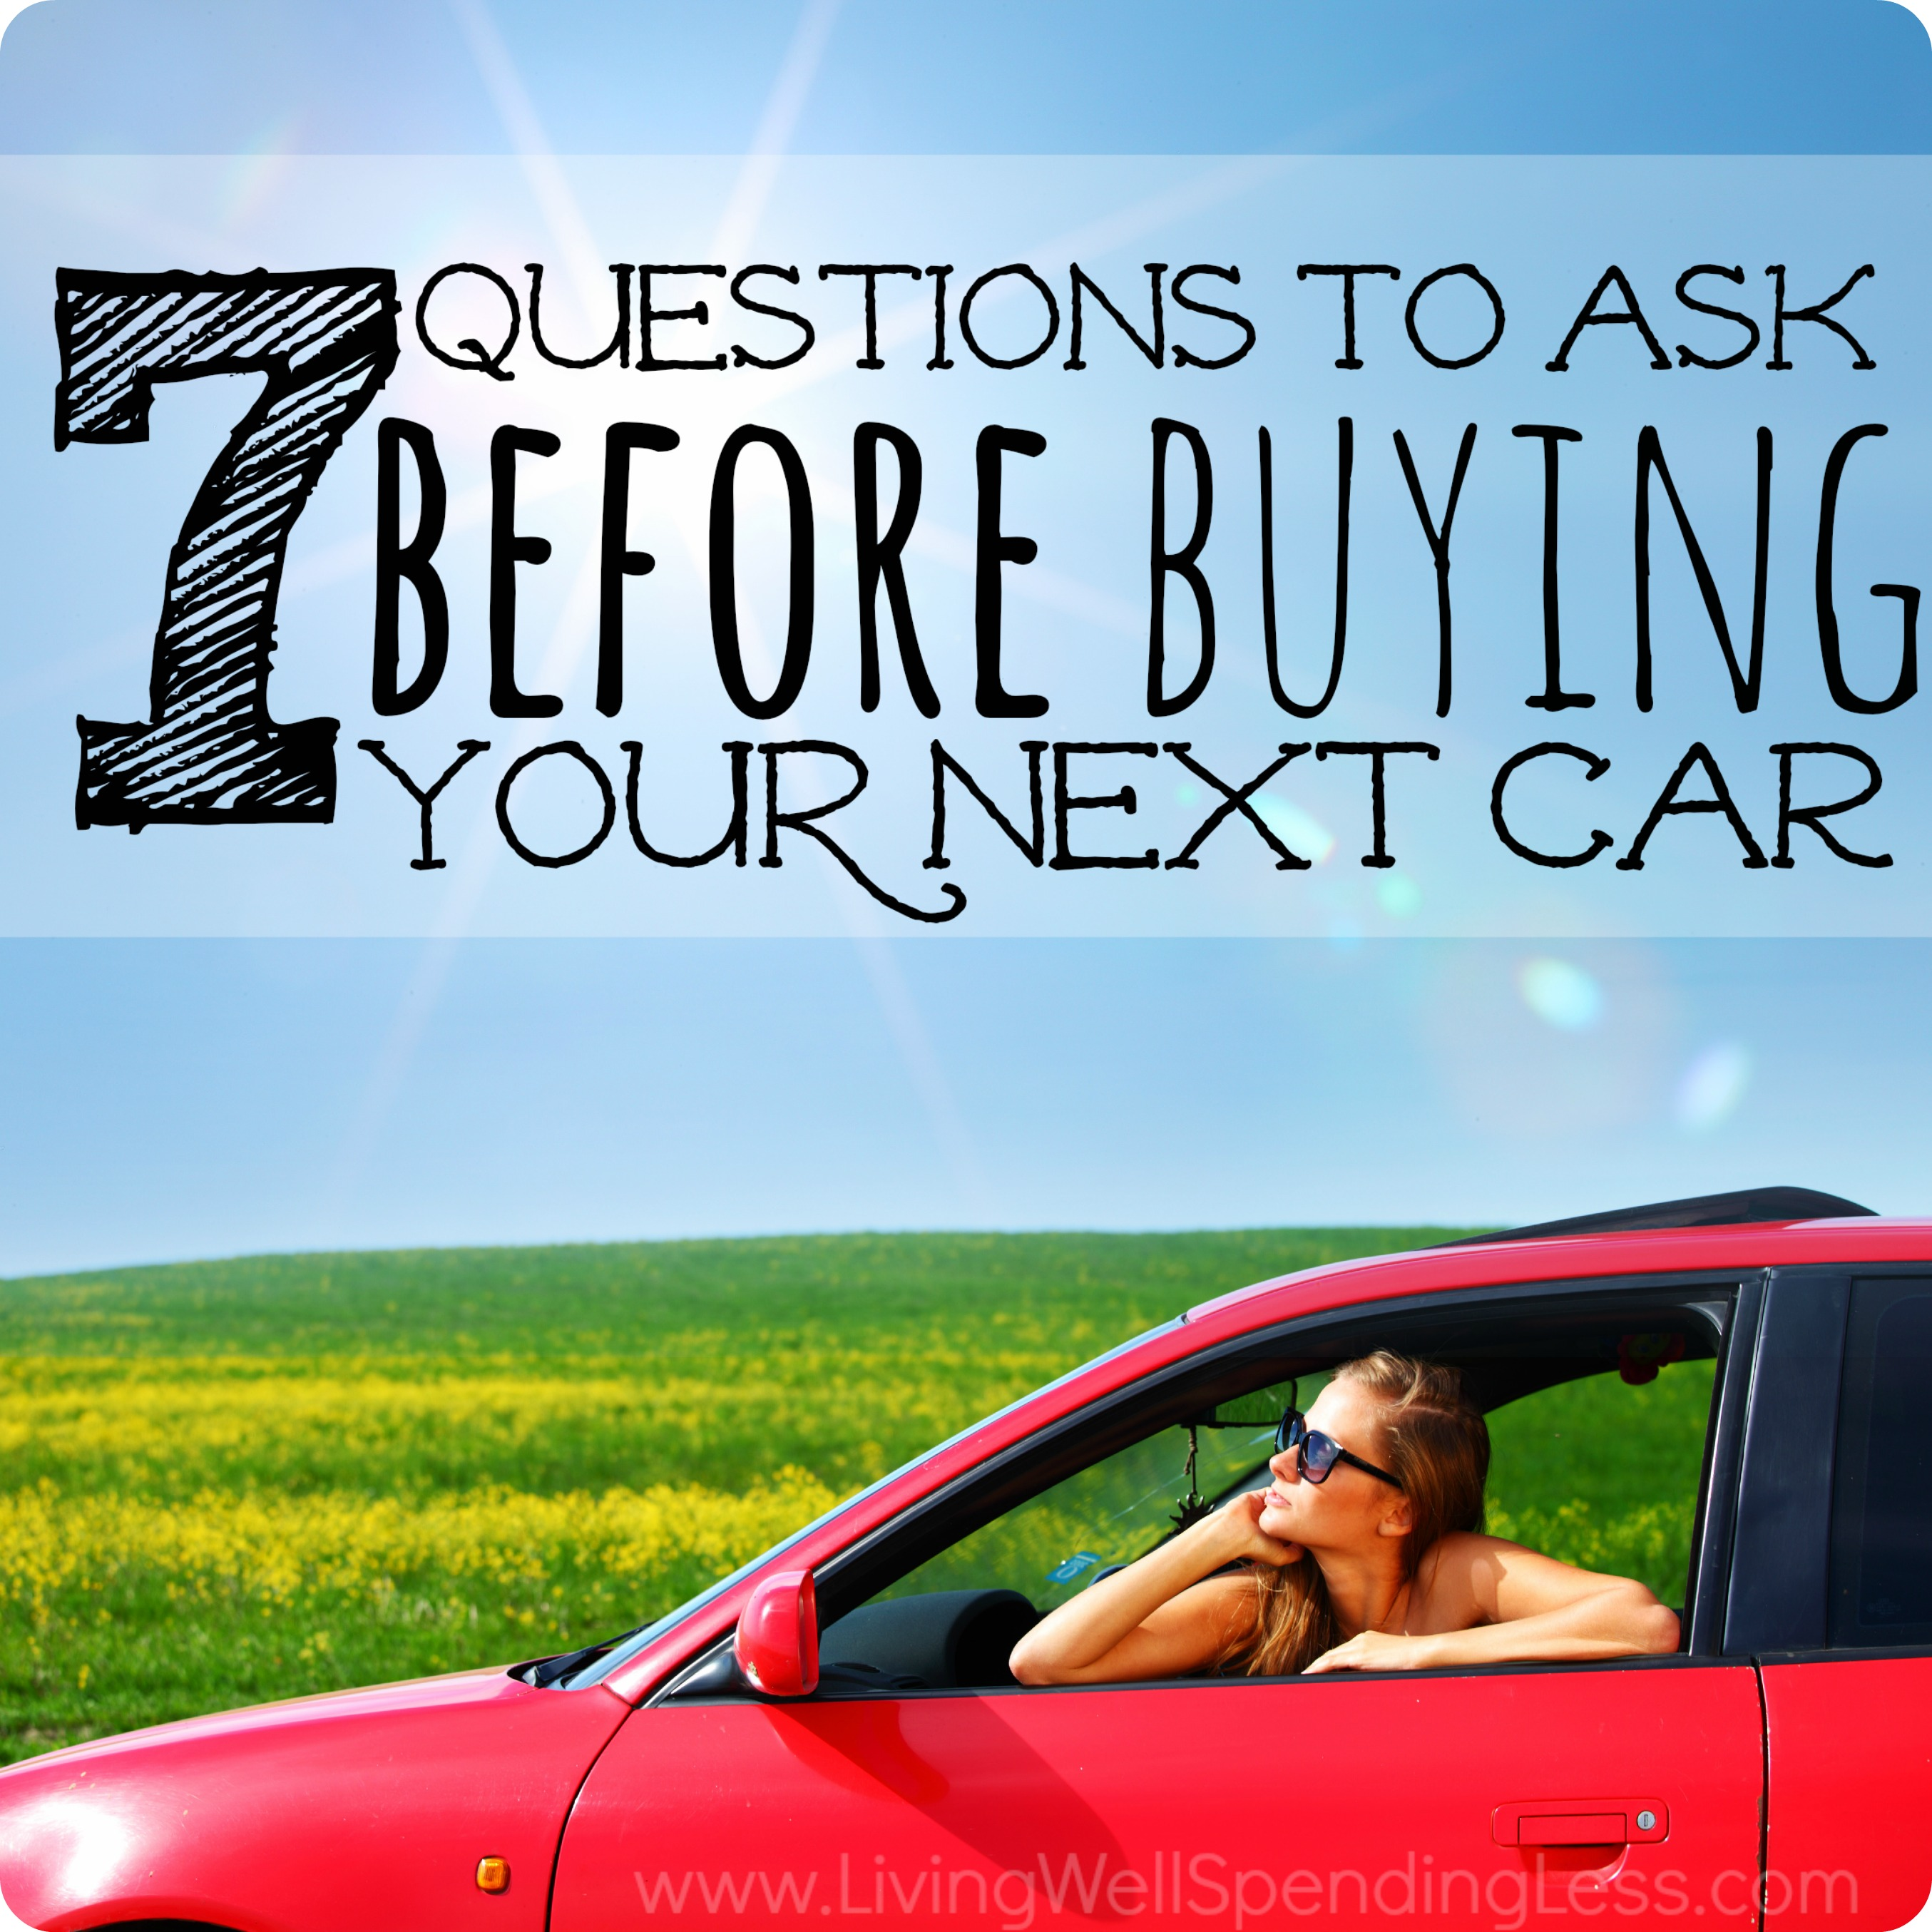 Questions To Ask When Buying A Car >> 7 Questions To Ask Before Buying A New Car Living Well